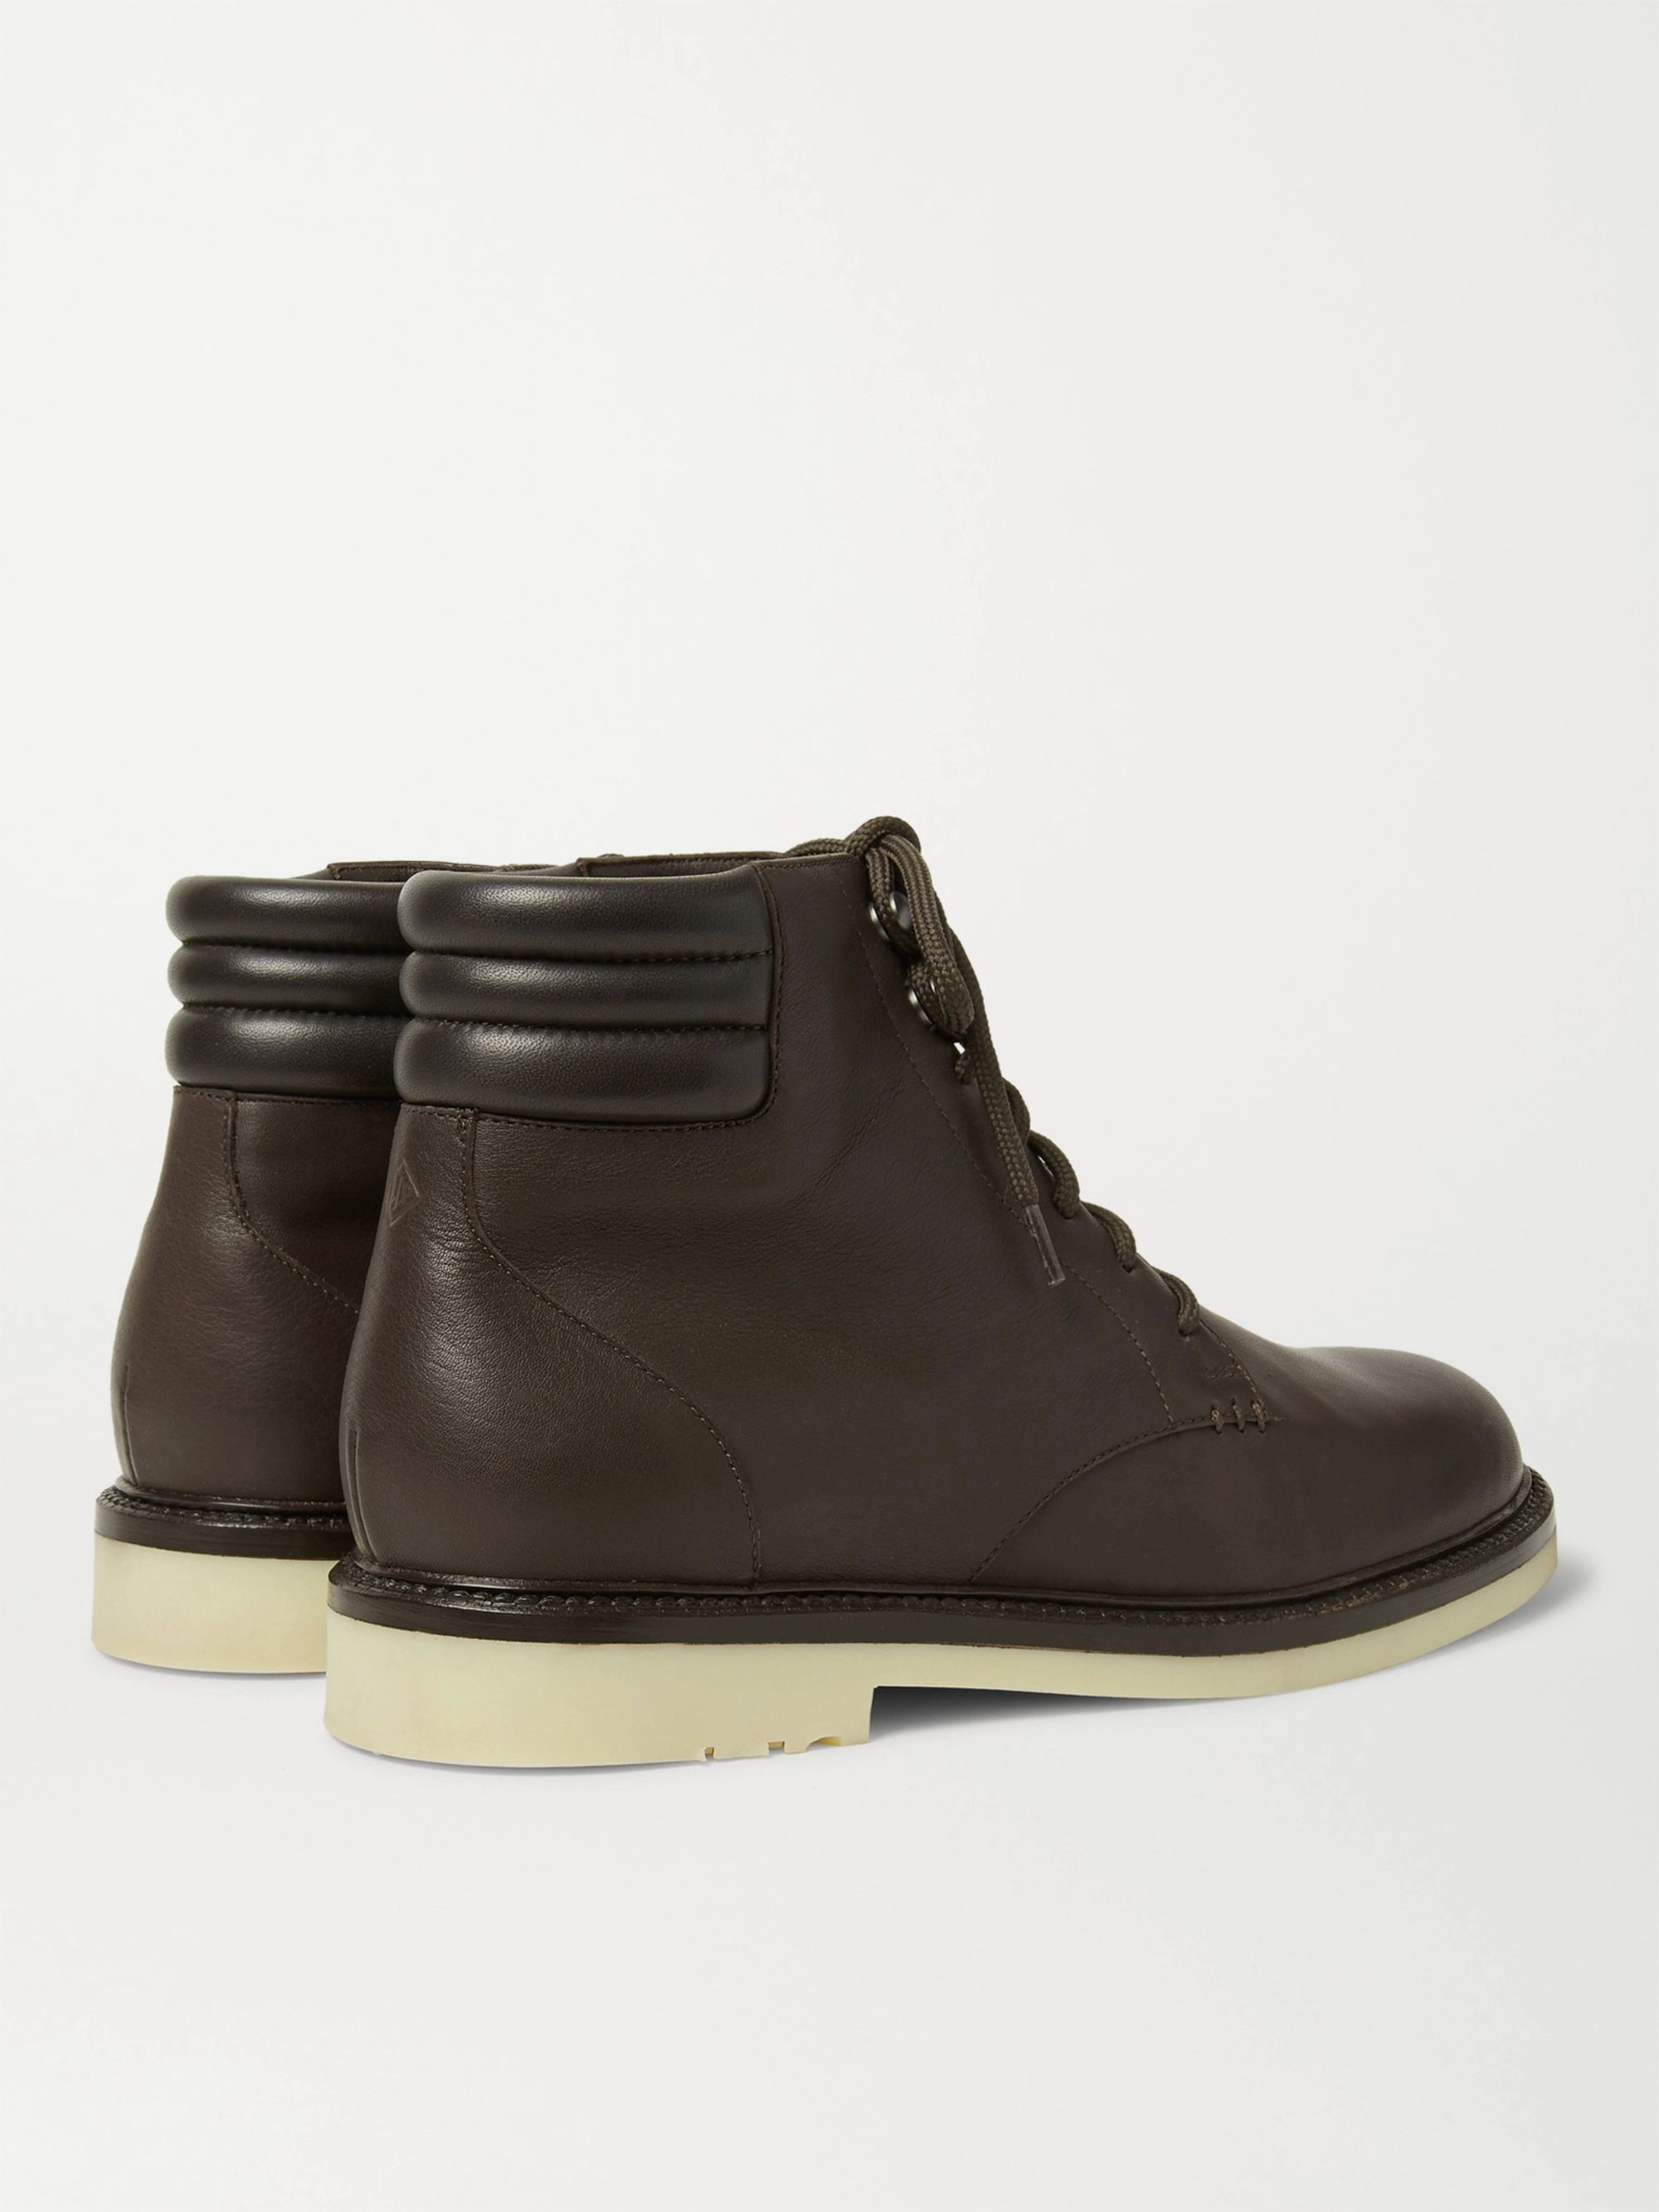 Loro Piana Icer Walk Leather Boots